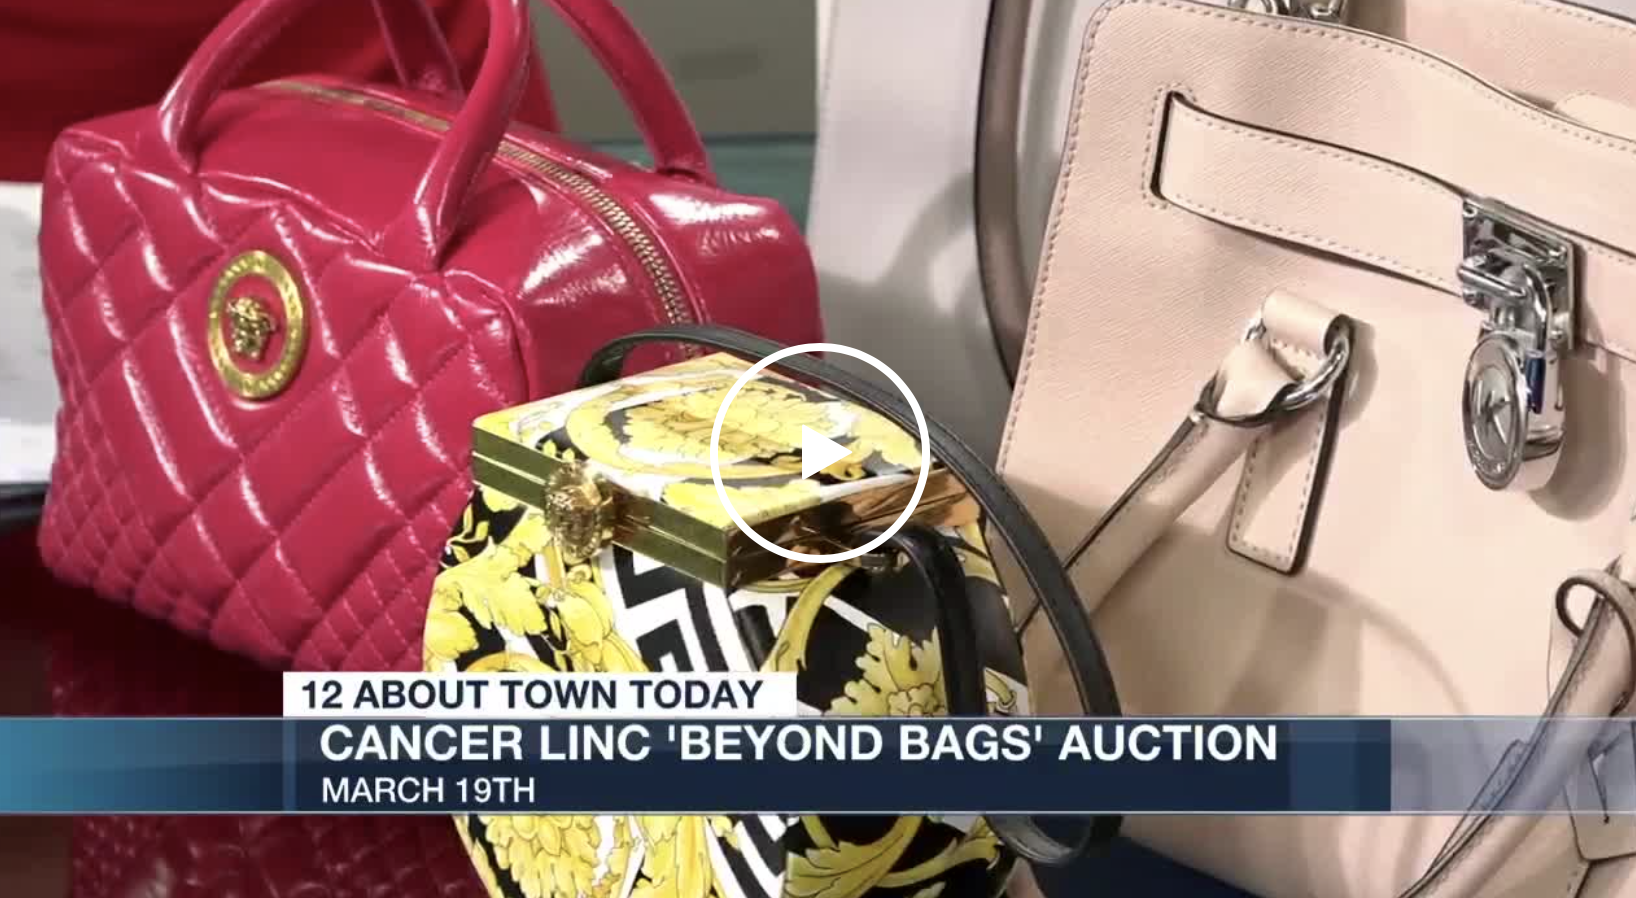 CancerLINC's Beyond Bags Auction on NBC12